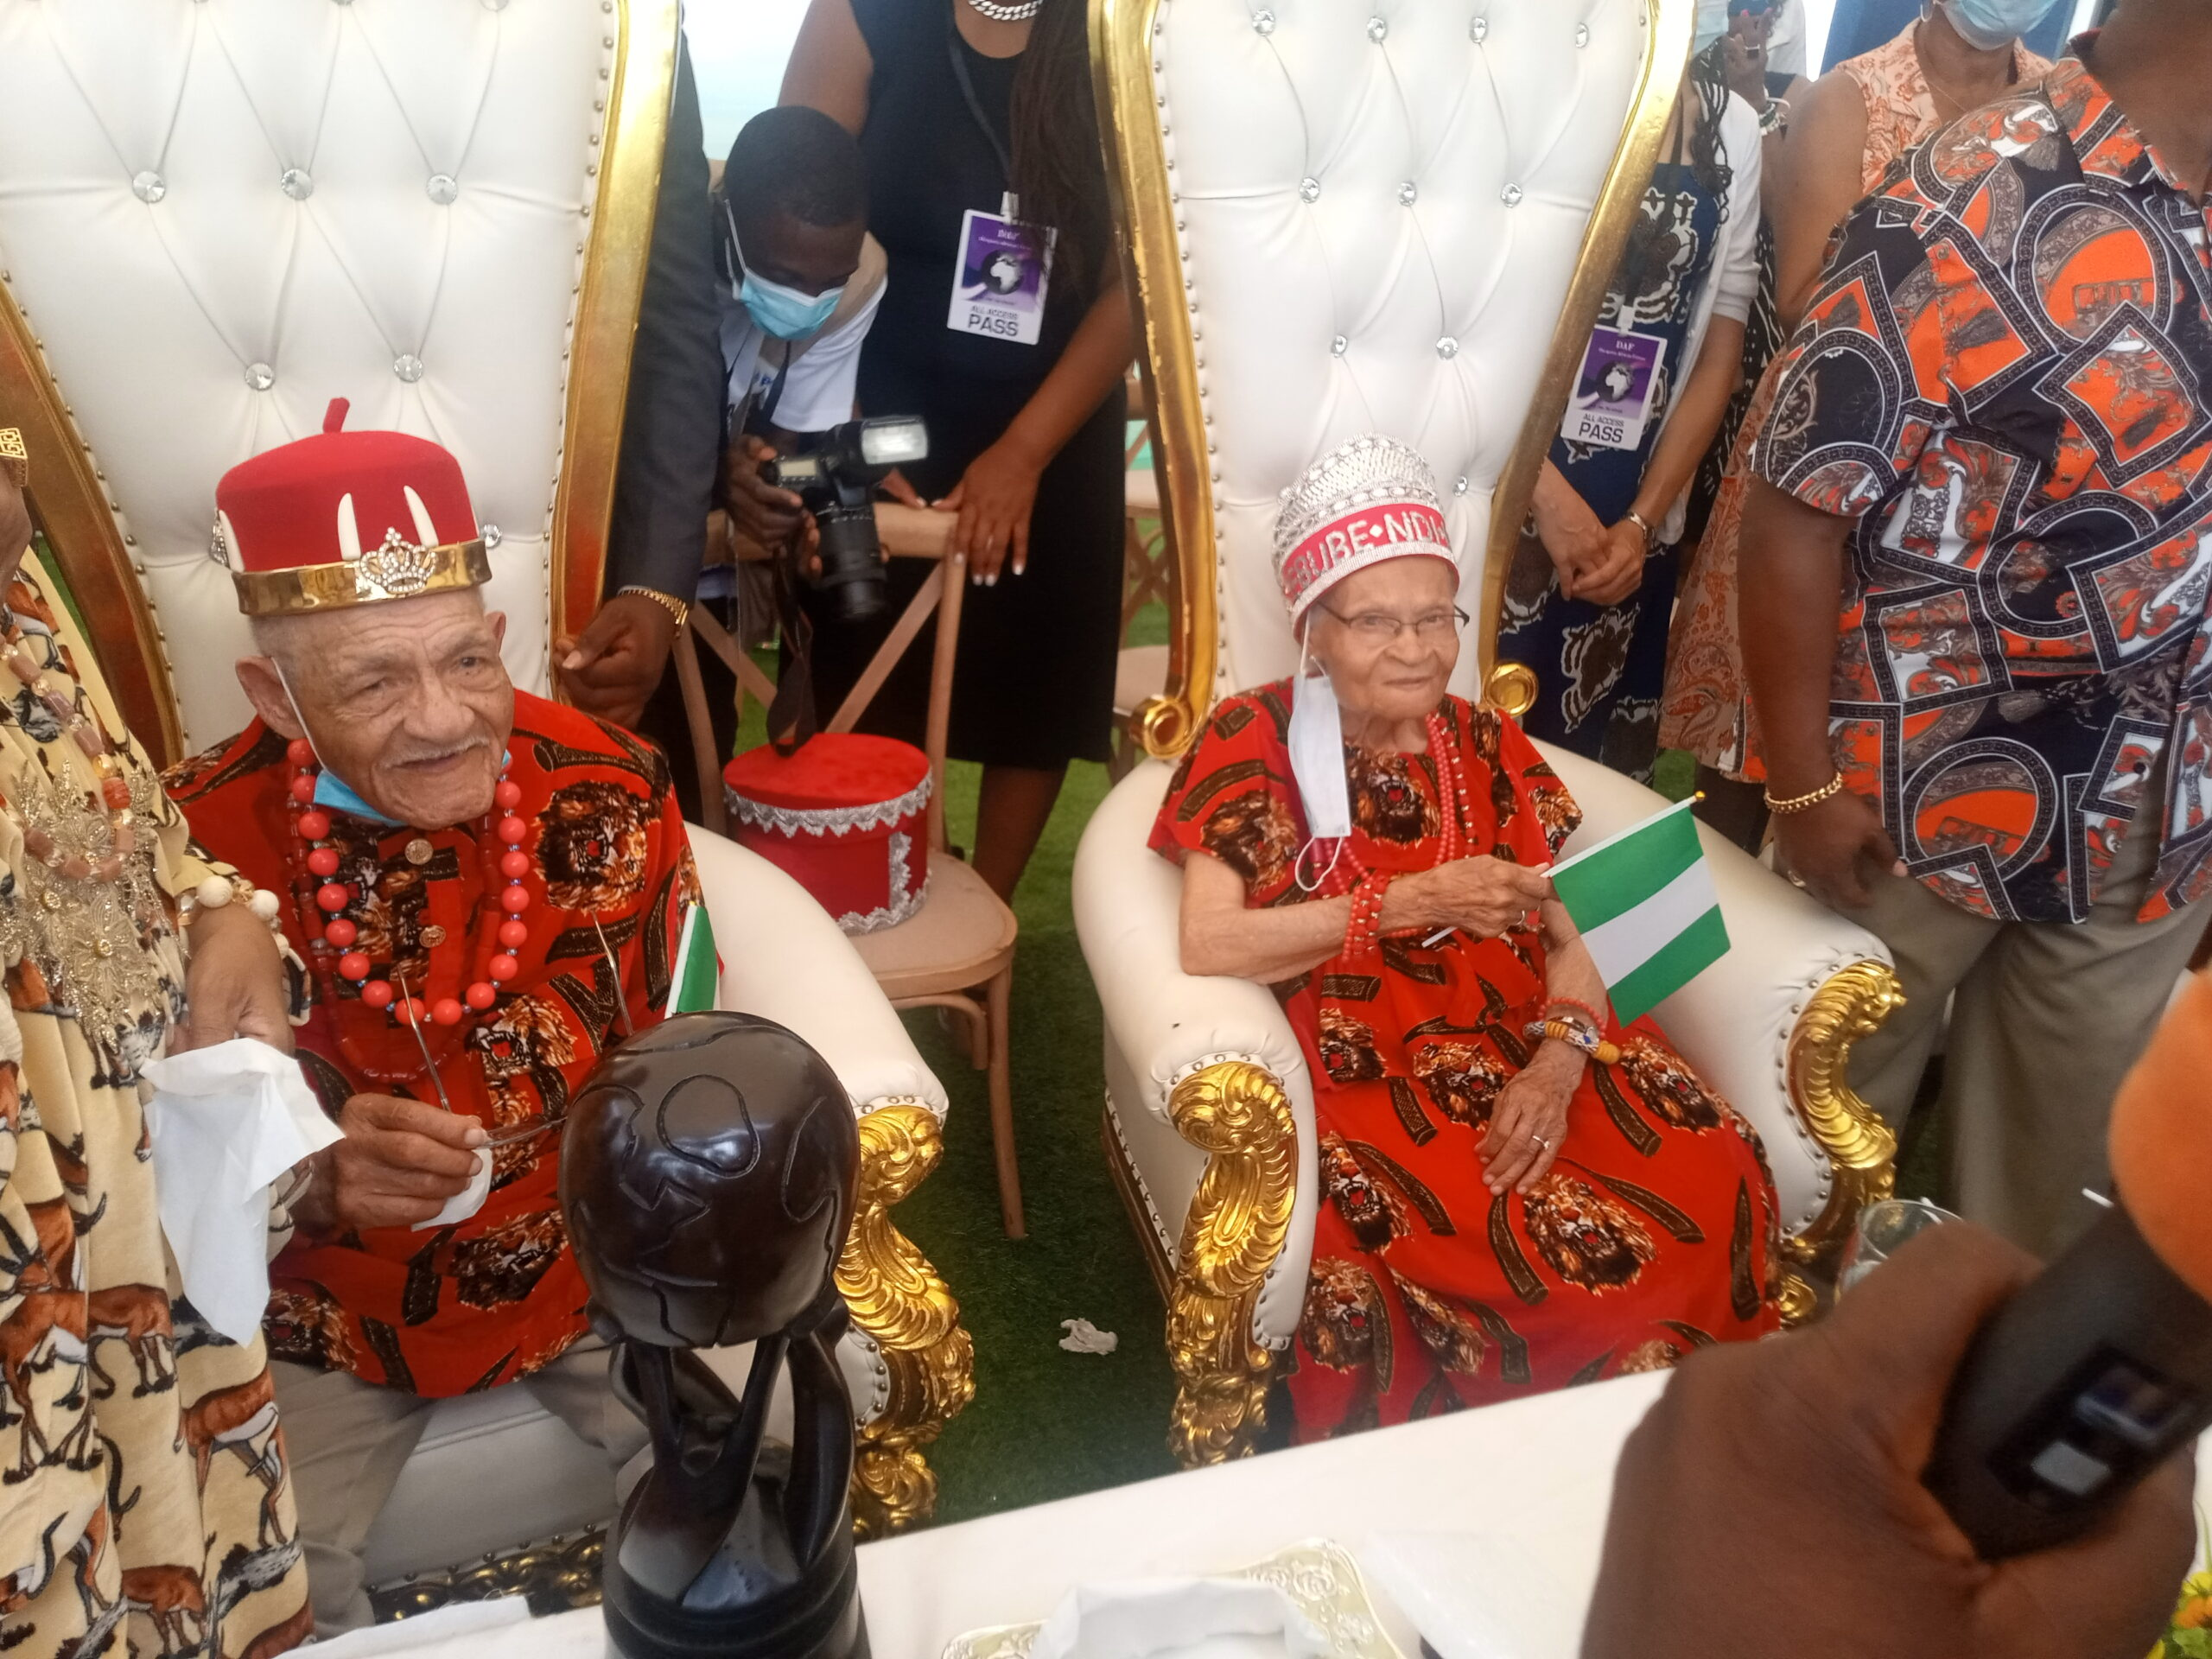 107-Year-Old Viola Fletcher and 100 -Year-Old Brother Call on Igbo King in Ghana